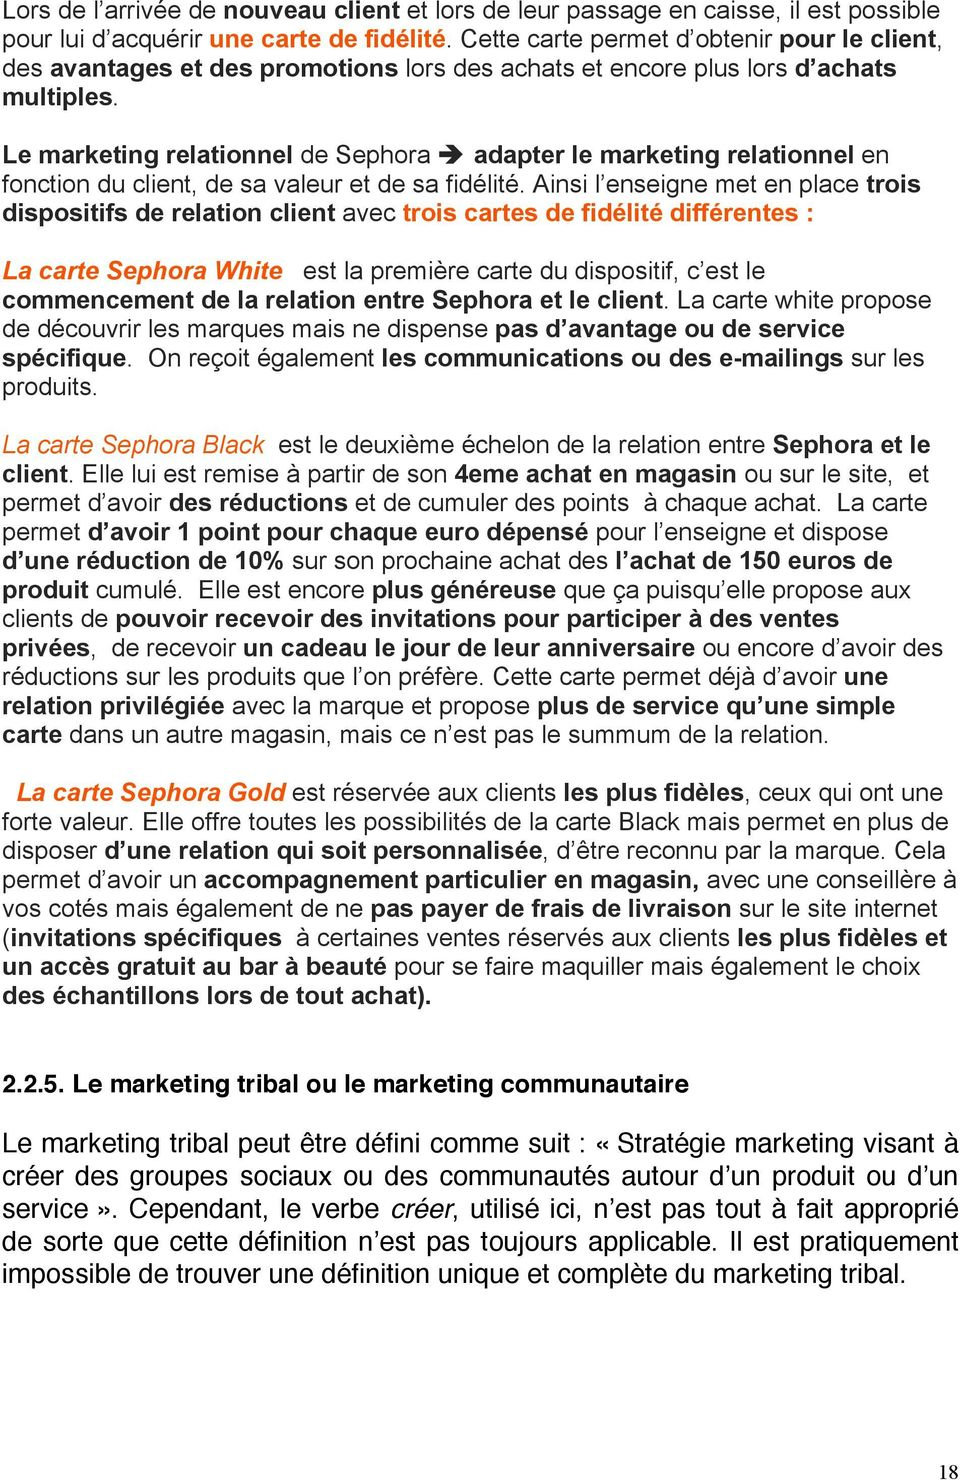 Le marketing relationnel de Sephora è adapter le marketing relationnel en fonction du client, de sa valeur et de sa fidélité.